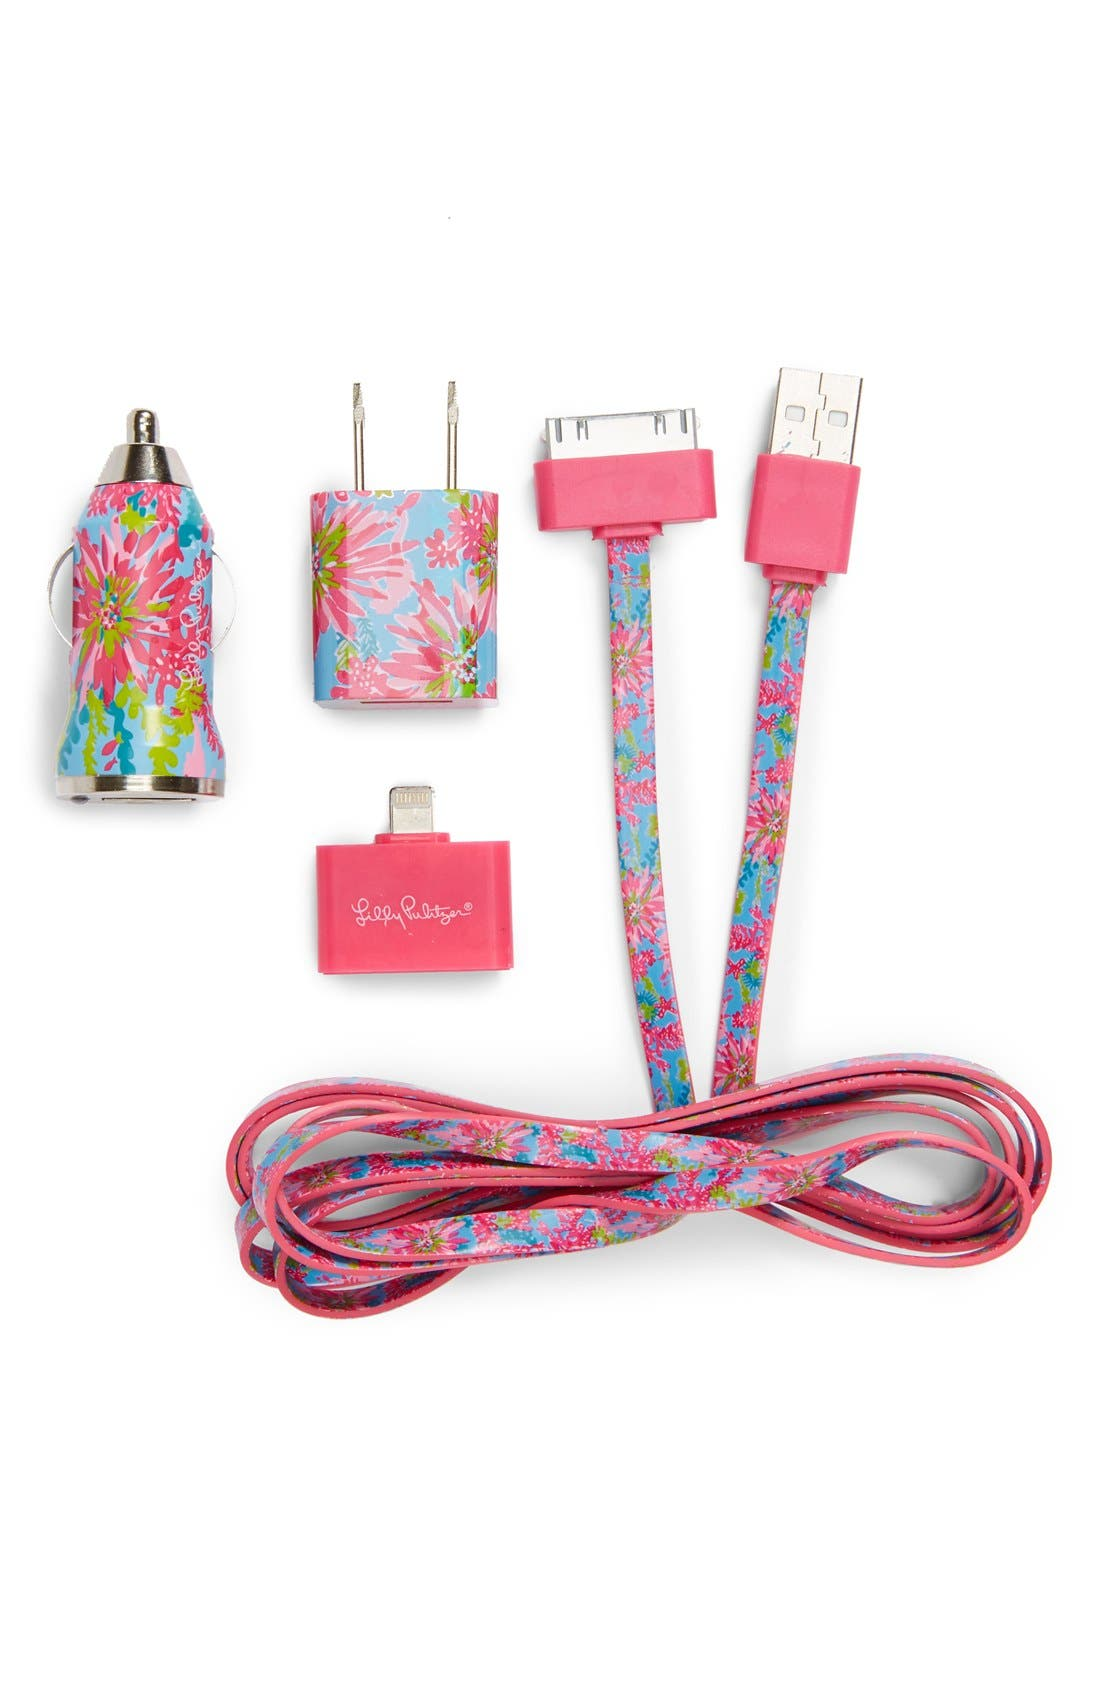 Alternate Image 1 Selected - Lilly Pulitzer® 'Trippin & Sippin' iPhone Charging Kit